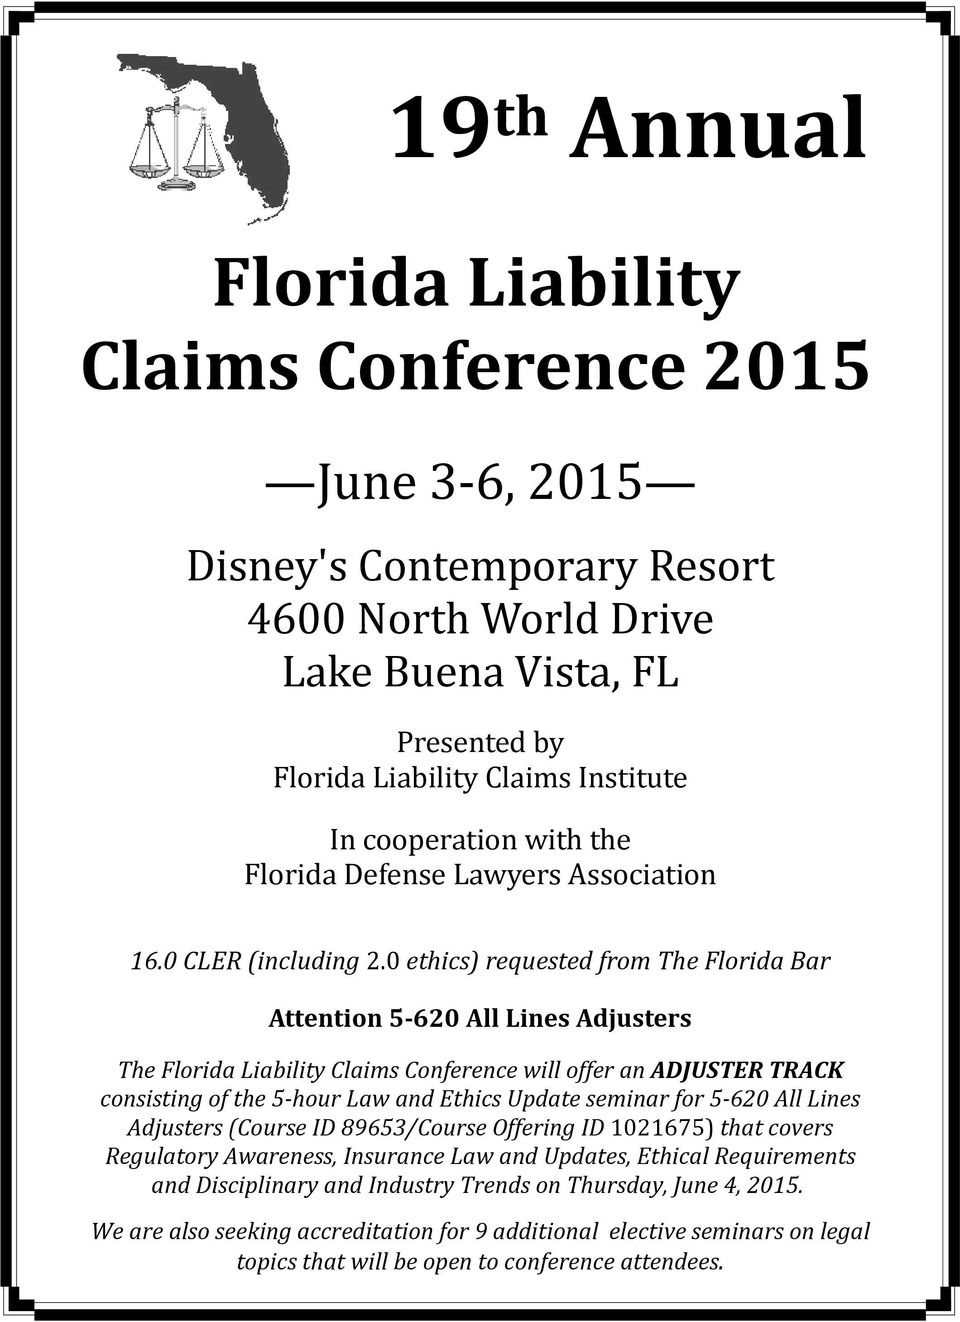 0 ethics) requested from The Florida Bar Attention 5 620 All Lines Adjusters The Florida Liability Claims Conference will offer an ADJUSTER TRACK consisting of the 5 hour Law and Ethics Update